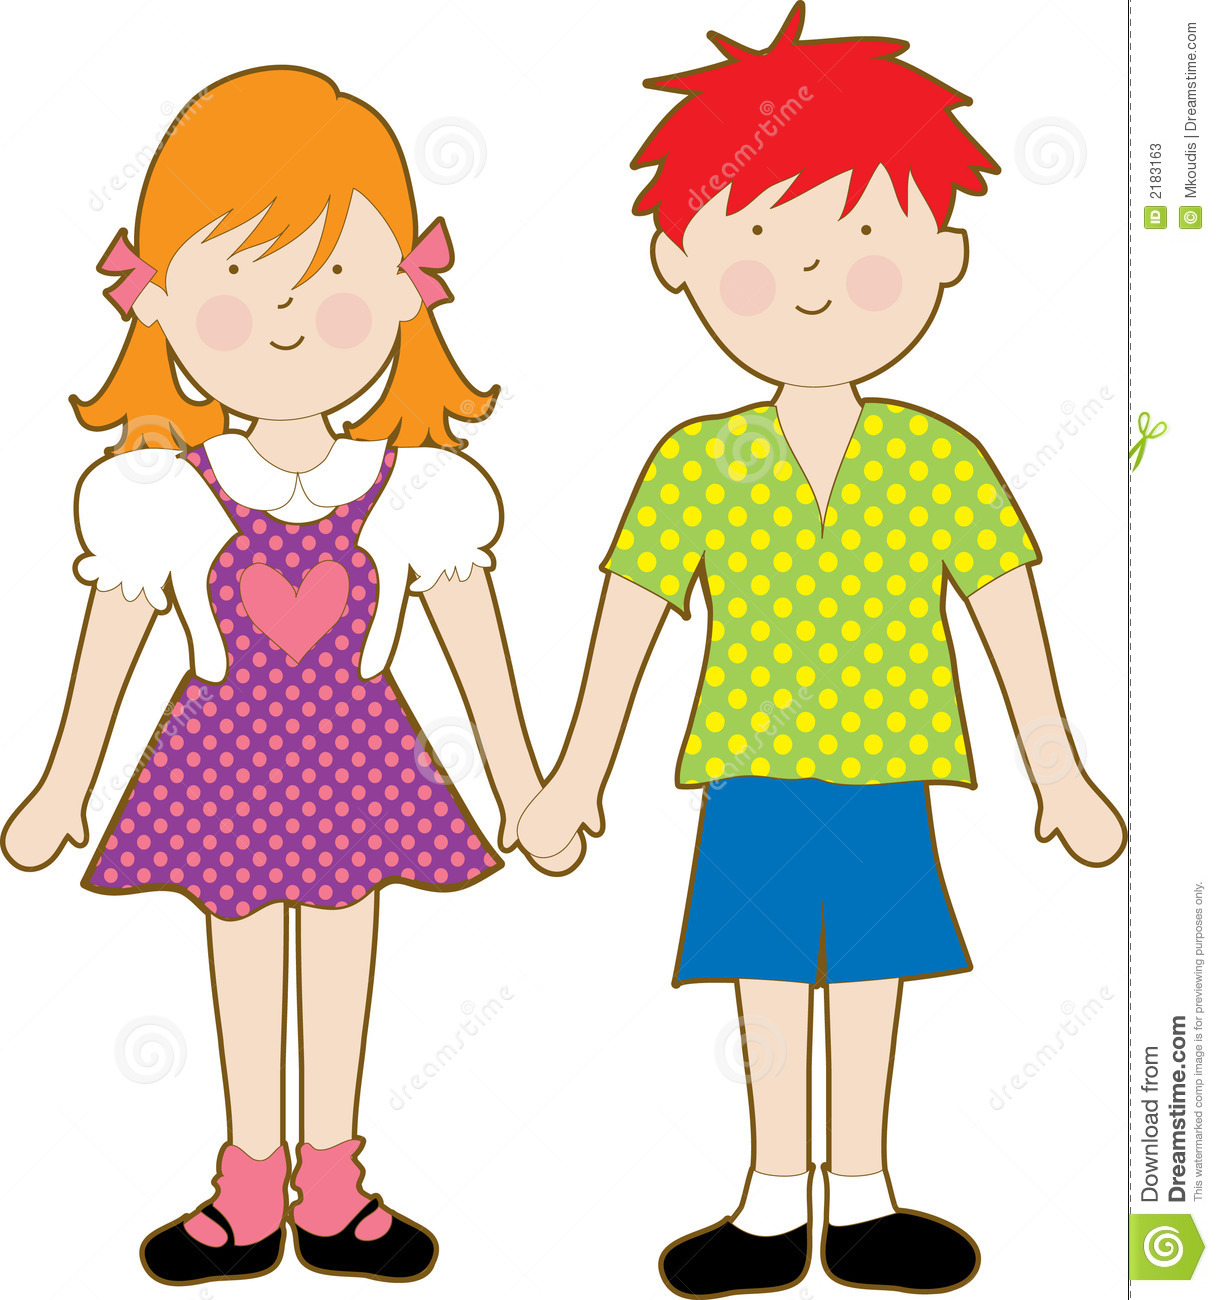 Clipart Girl And Boy.